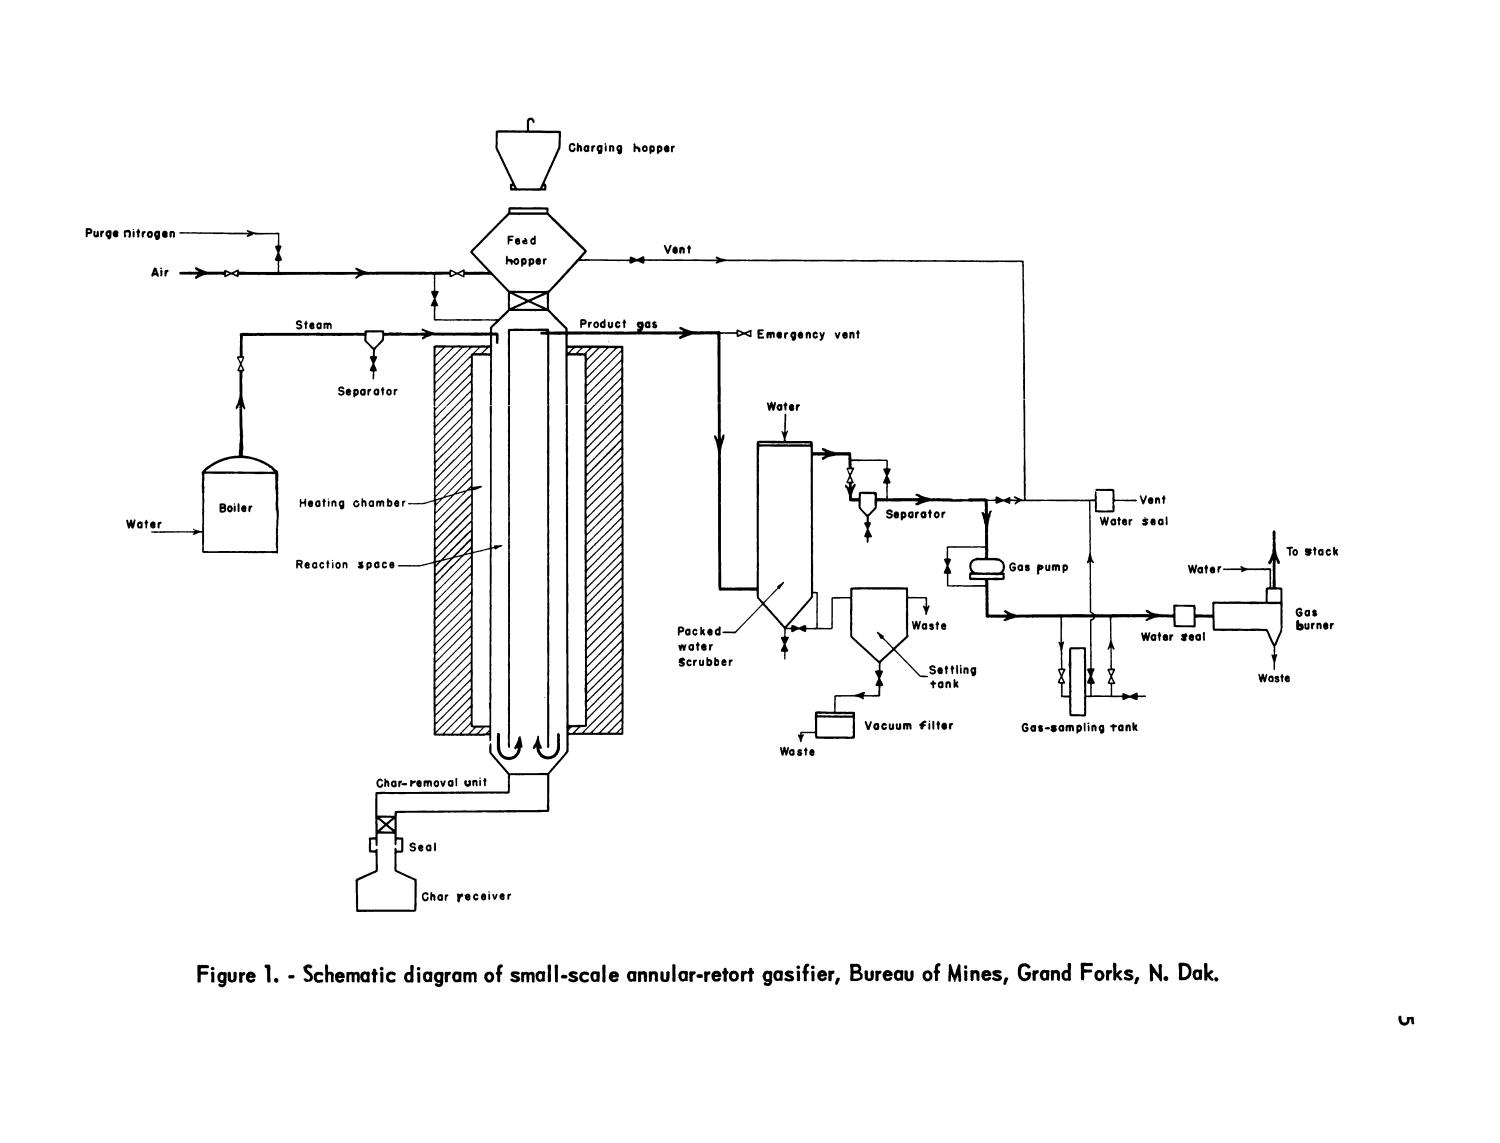 Production Of Crude Ammonia Synthesis Gas From North Dakota Lignite Air Receiver Tank Schematic In An Annular Retort Gasifier Page 5 Digital Library